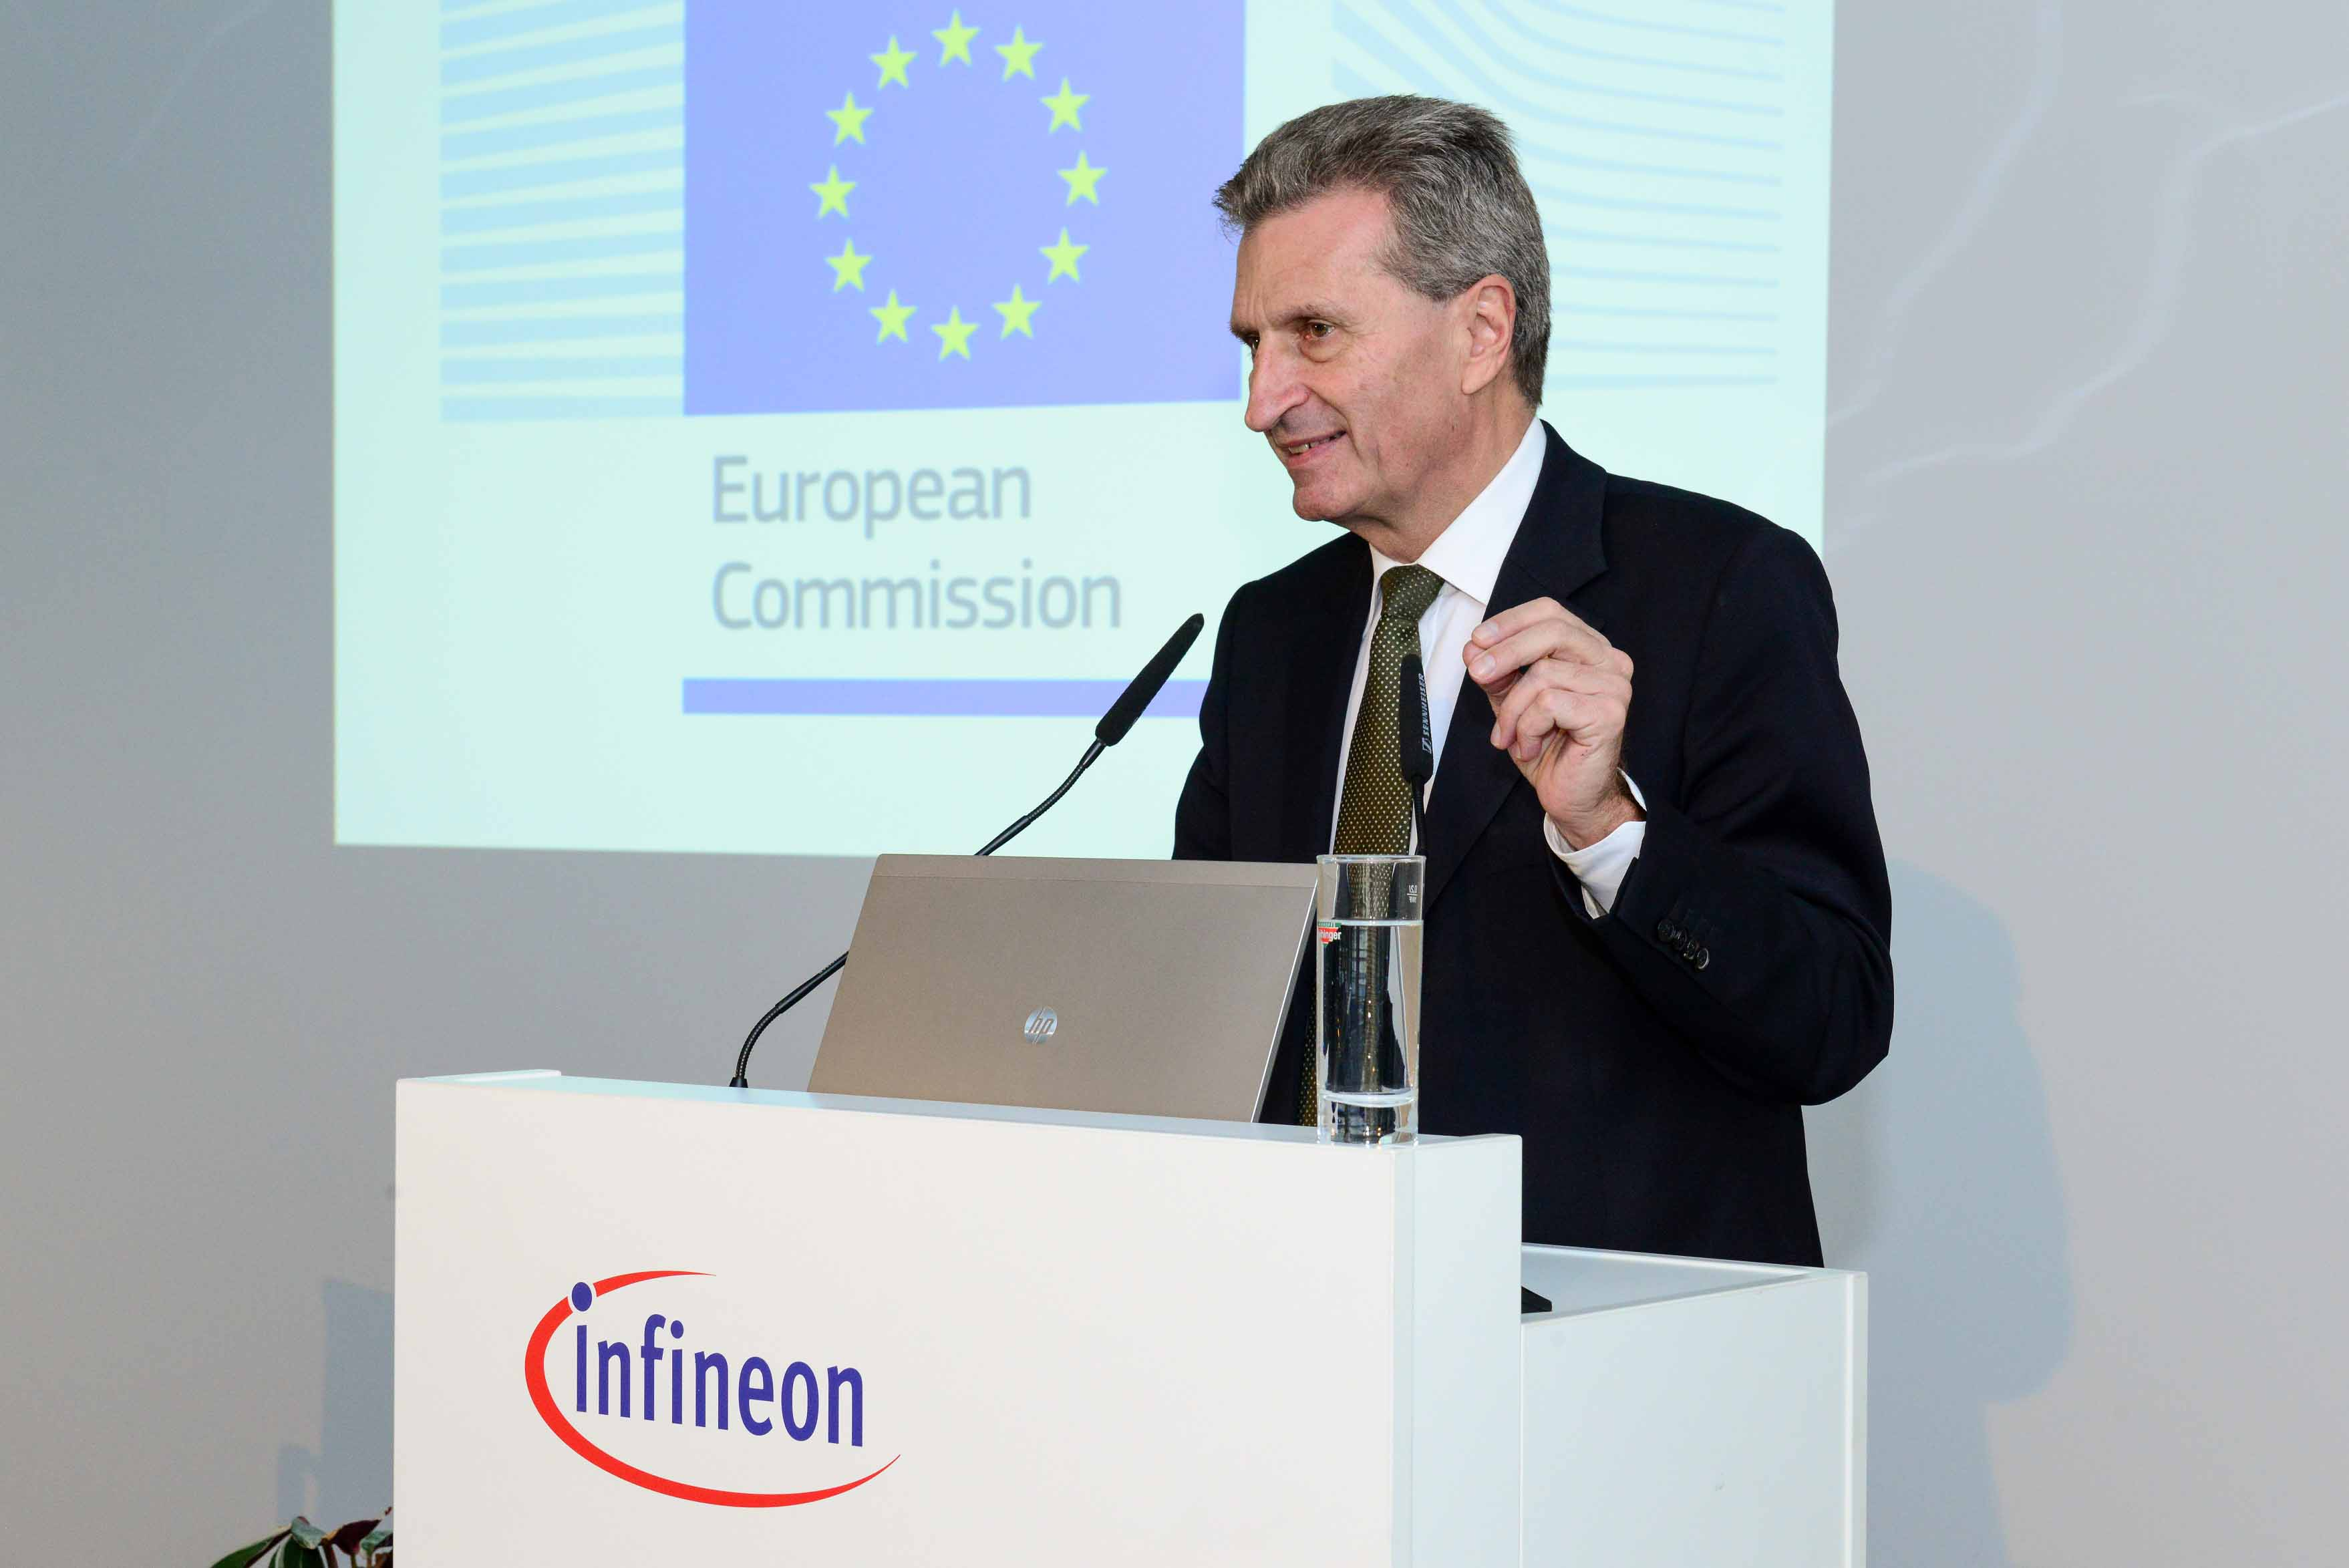 Günther Oettinger discusses current technological trends from Silicon Saxony.